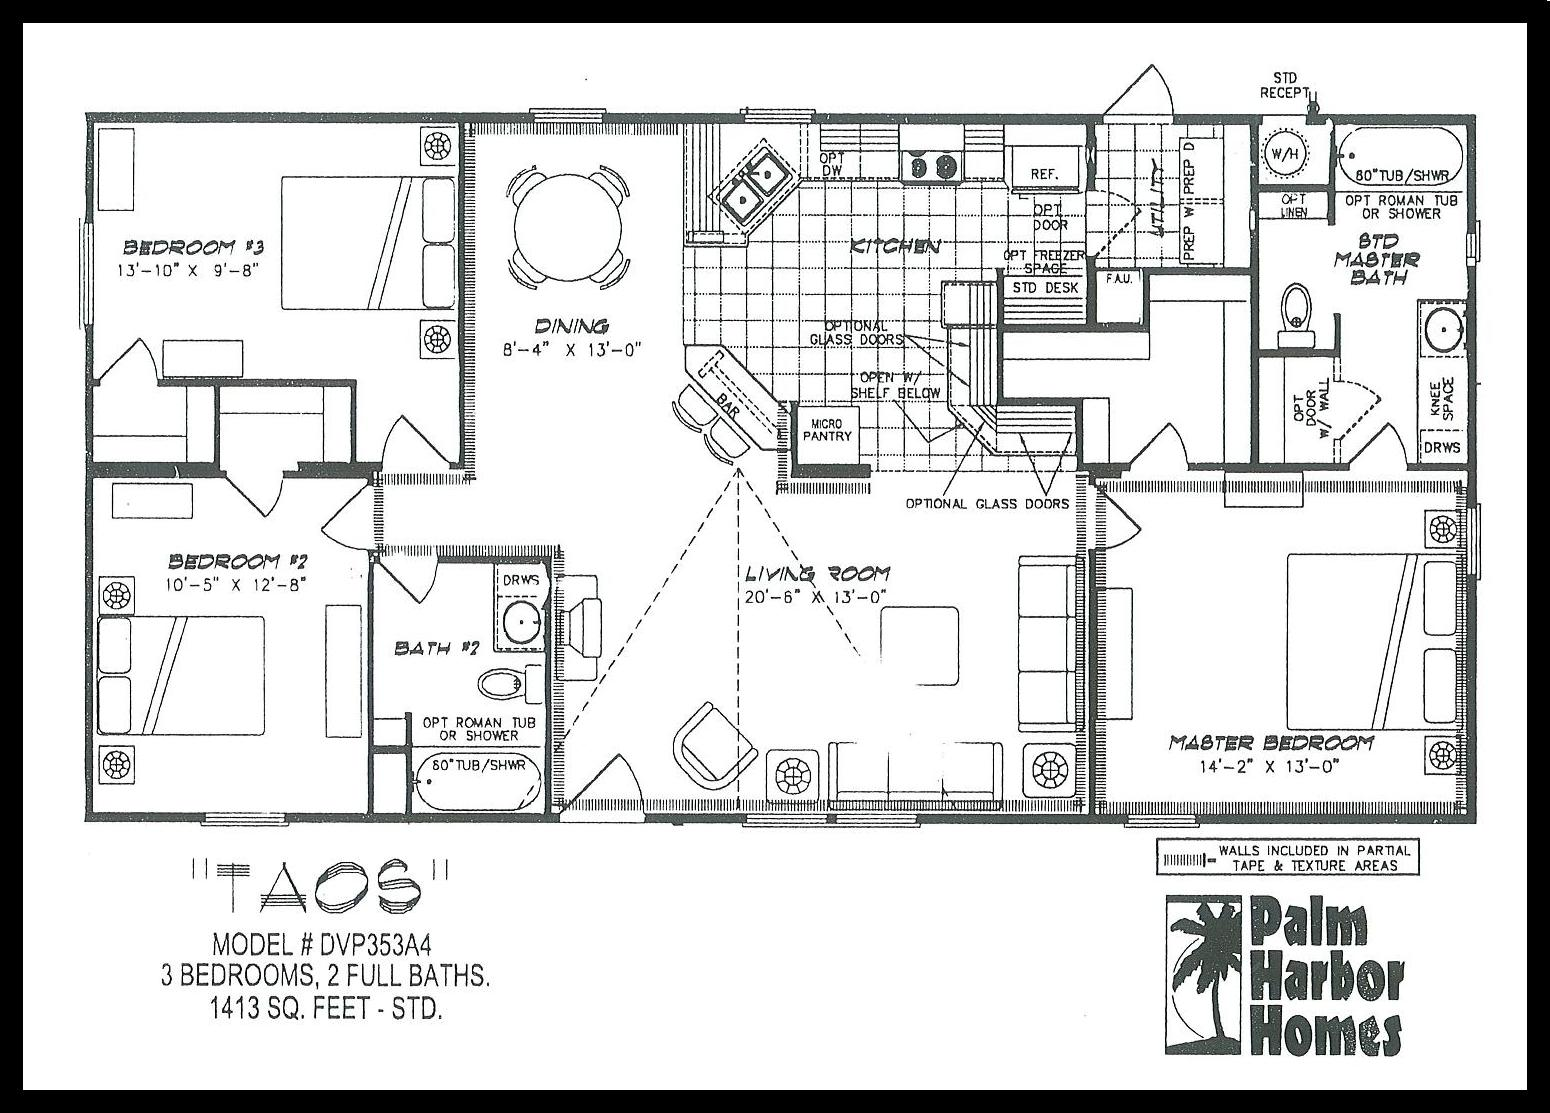 Trailer park homes plans home design and style for Rv park blueprints